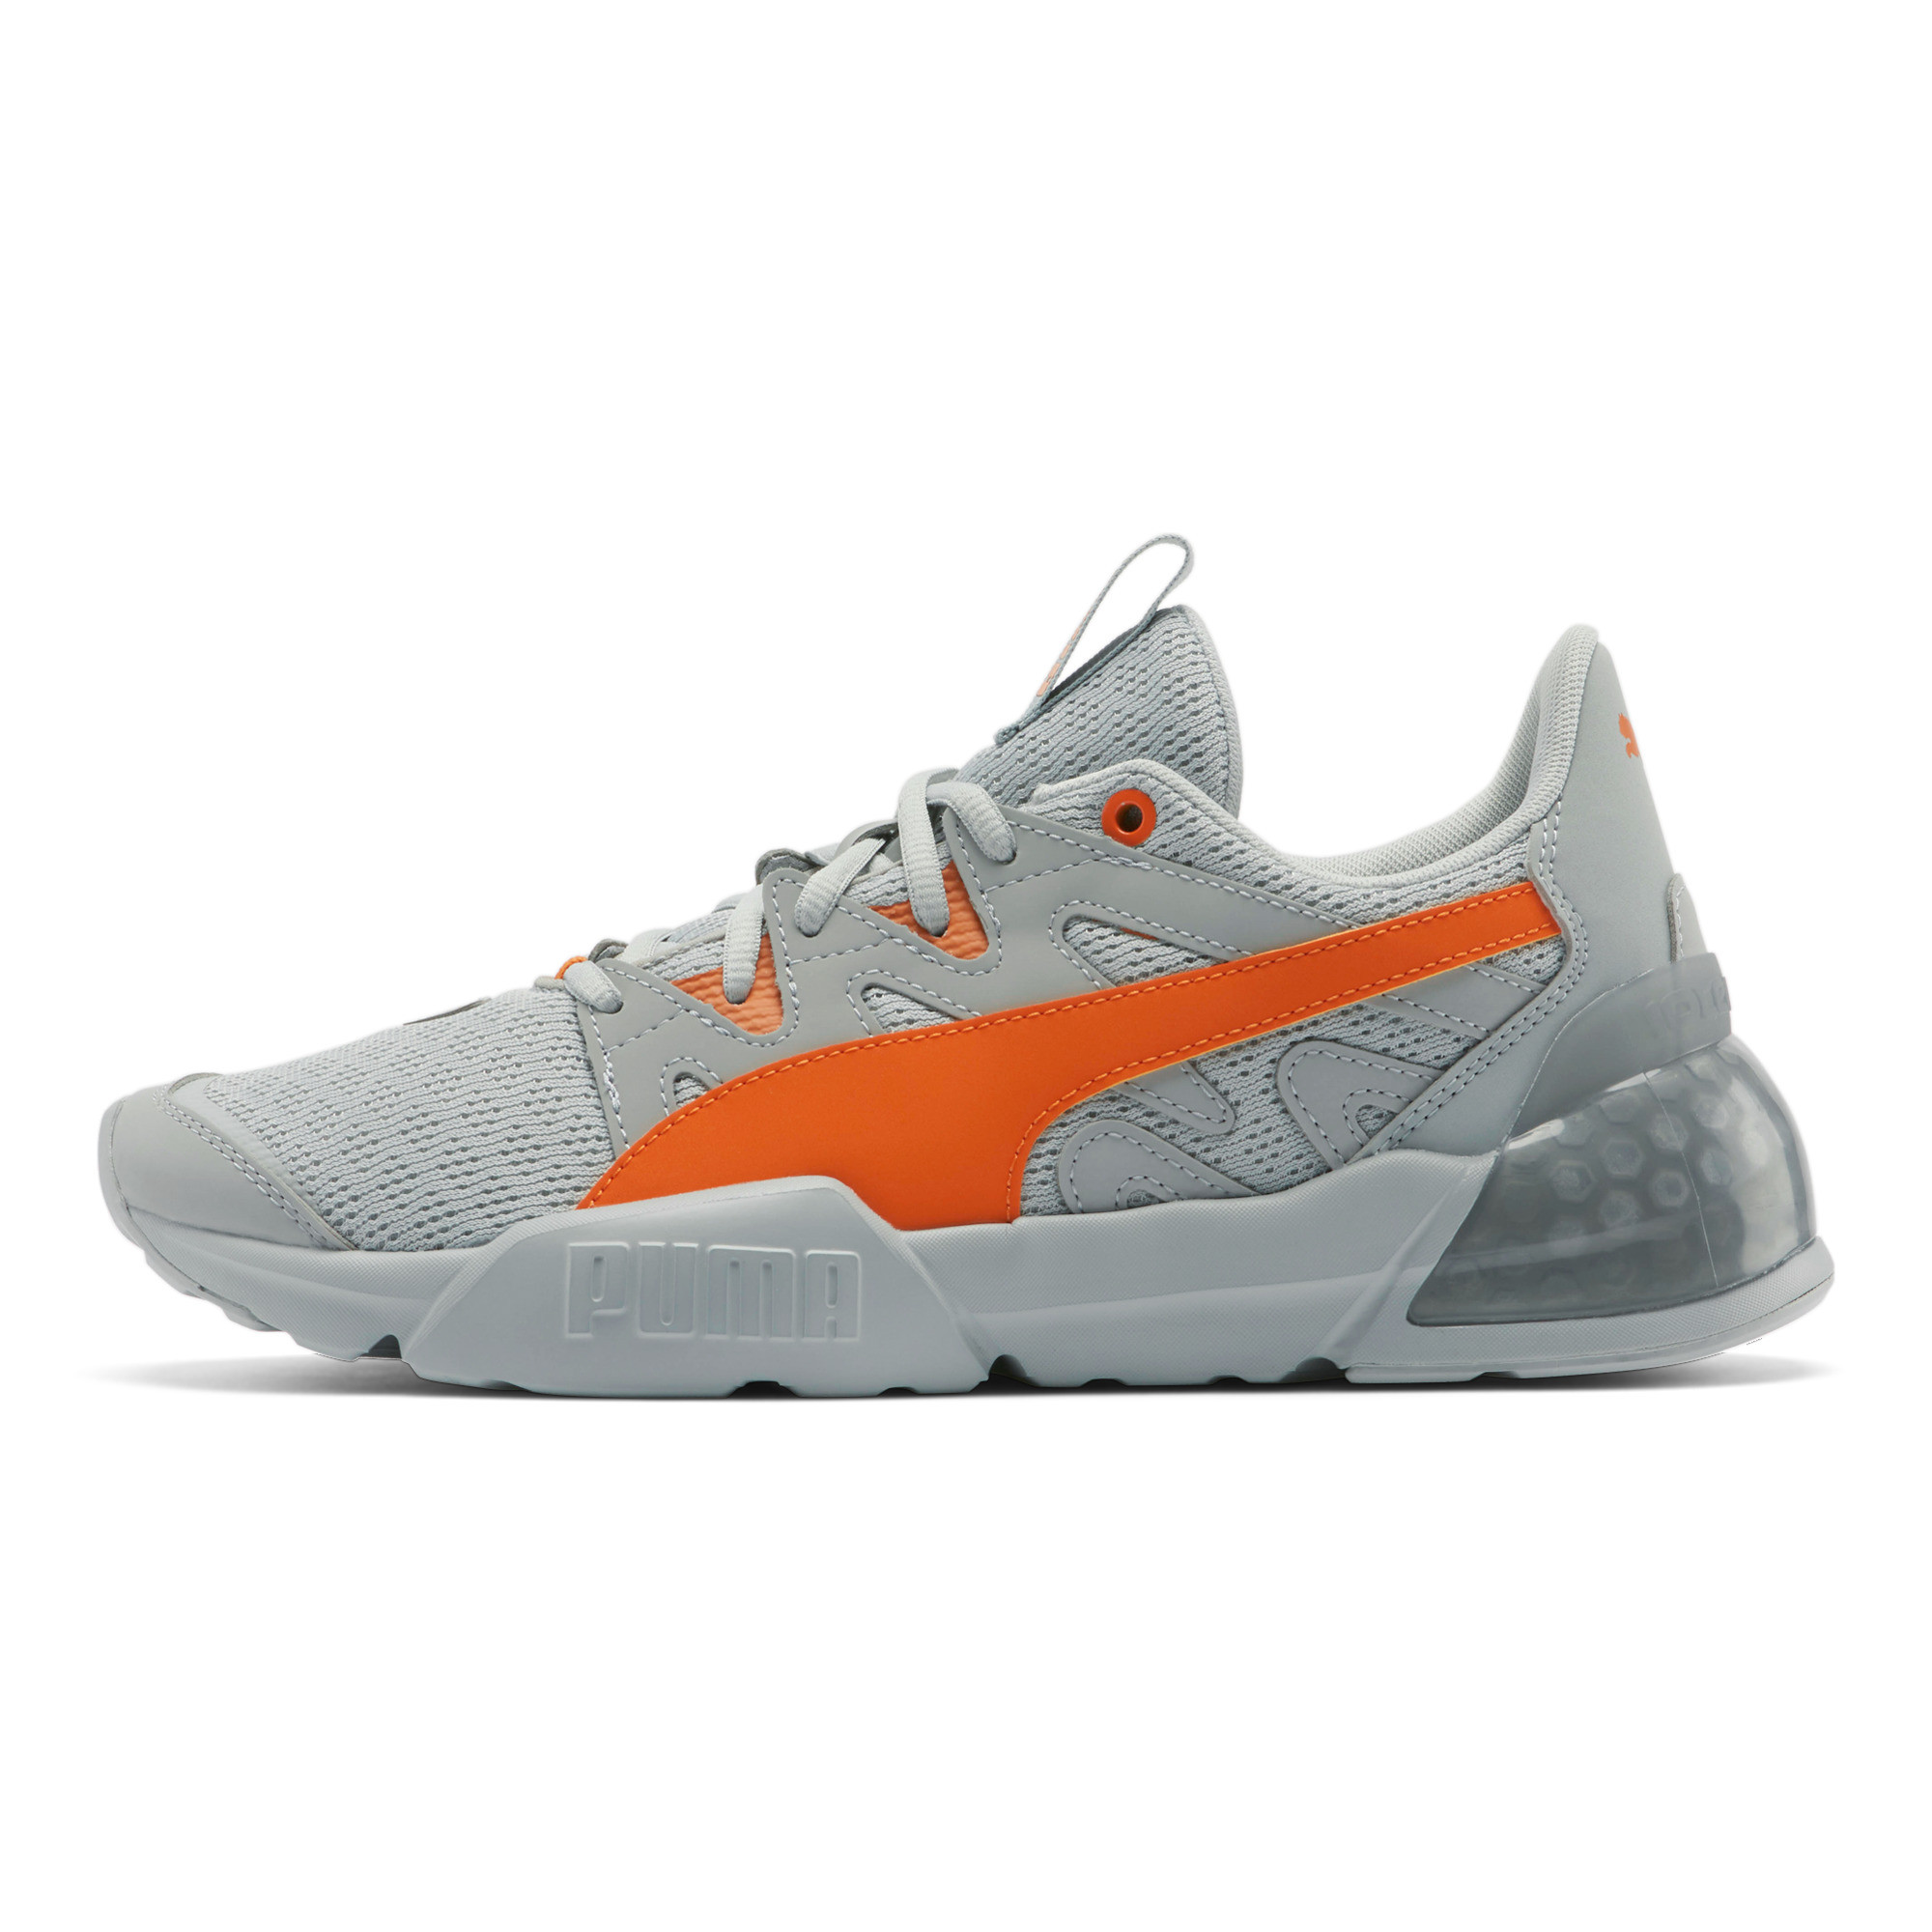 PUMA-Men-039-s-CELL-Pharos-Training-Shoes thumbnail 16